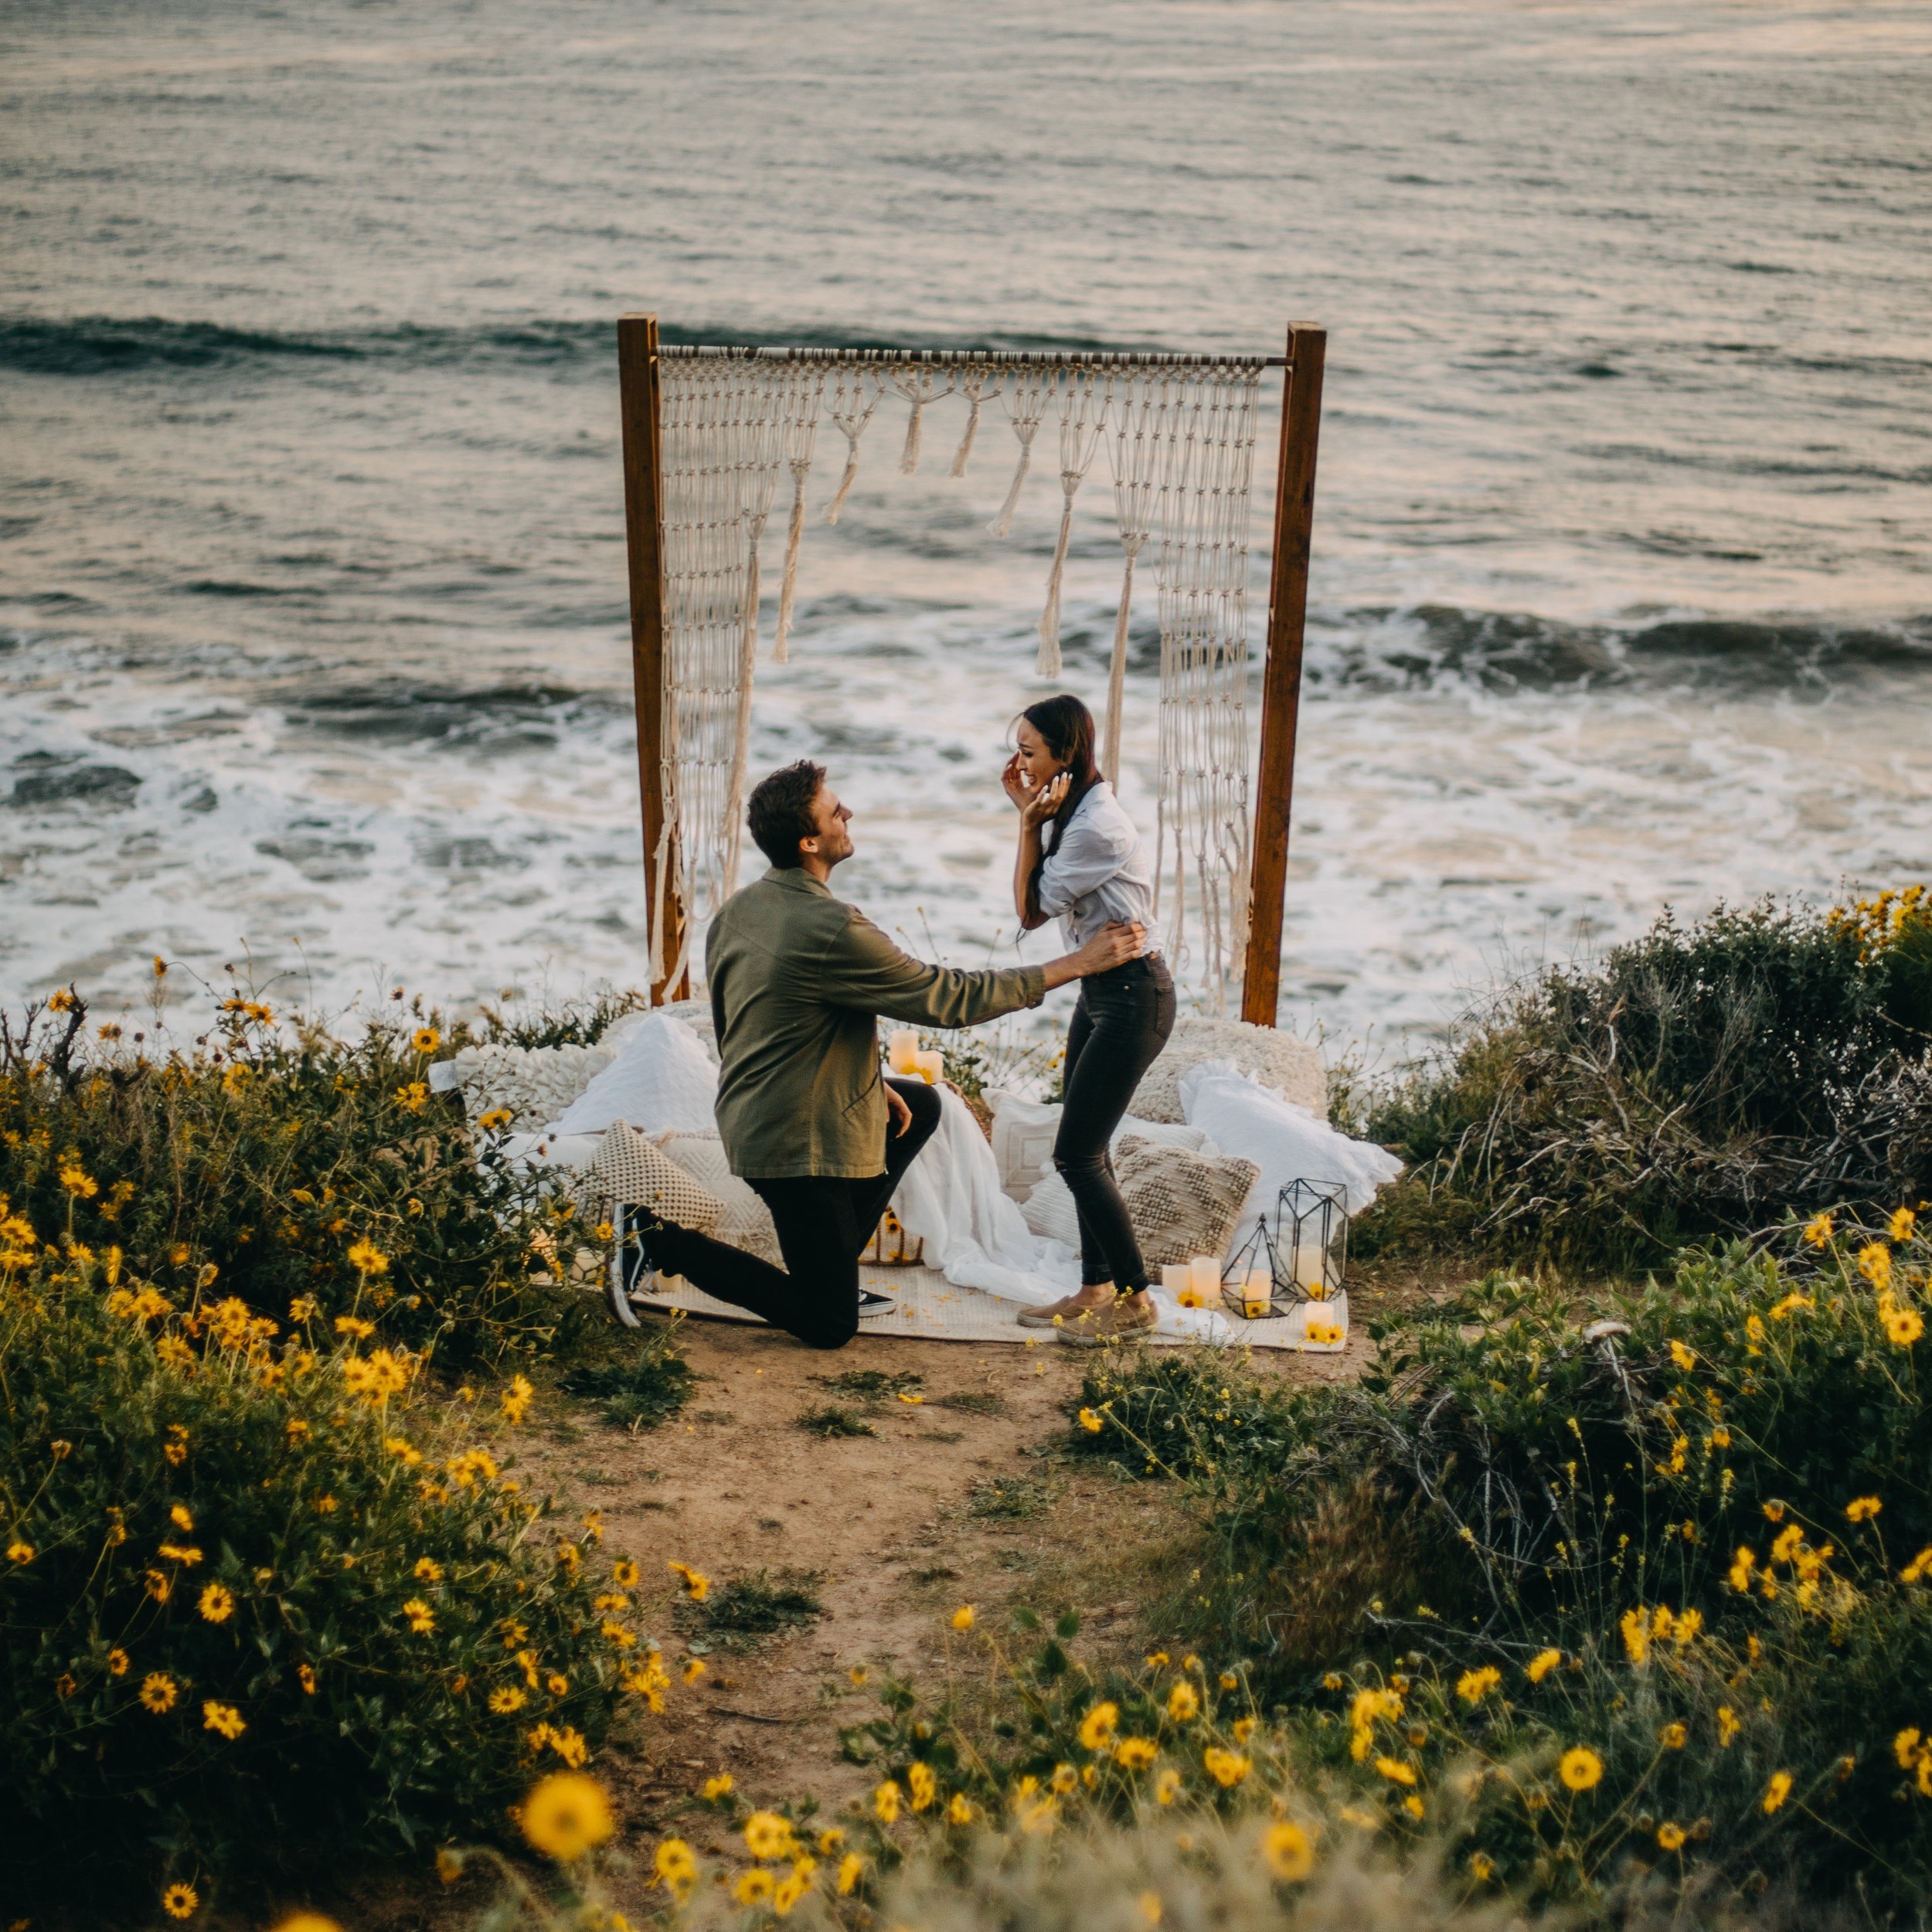 Malibu Proposal - Chad & Sophia's beautiful sunset proposal on a cliff in Malibu, surrounded by blooming flowers.